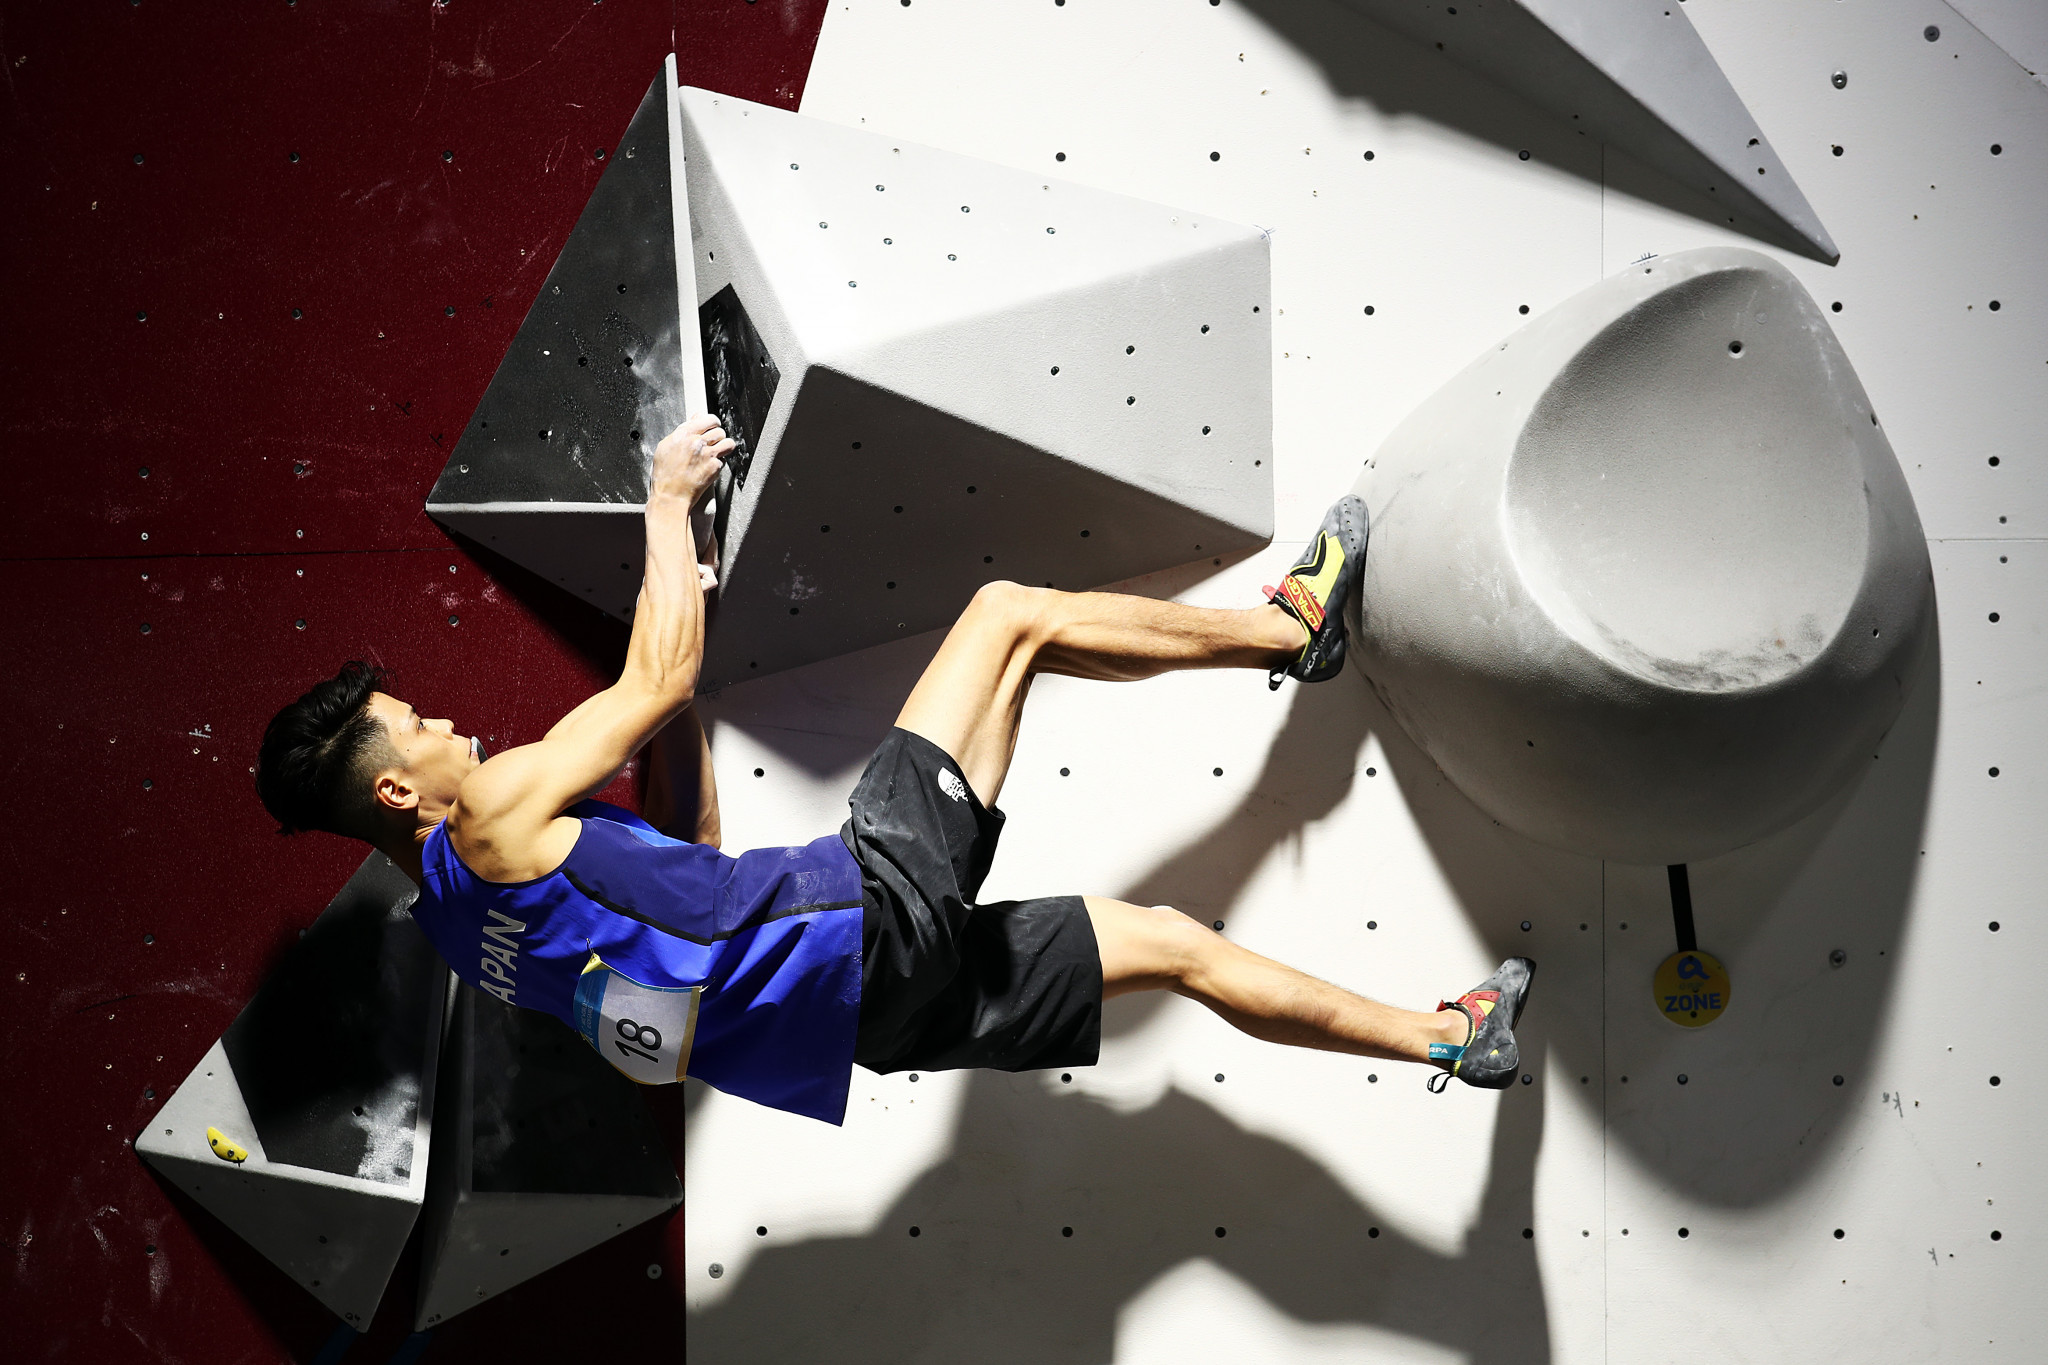 Japan's 18-year-old 2018 world bouldering champion Kai Harada walked up walls during the ANOC Beach Games ©Getty Images